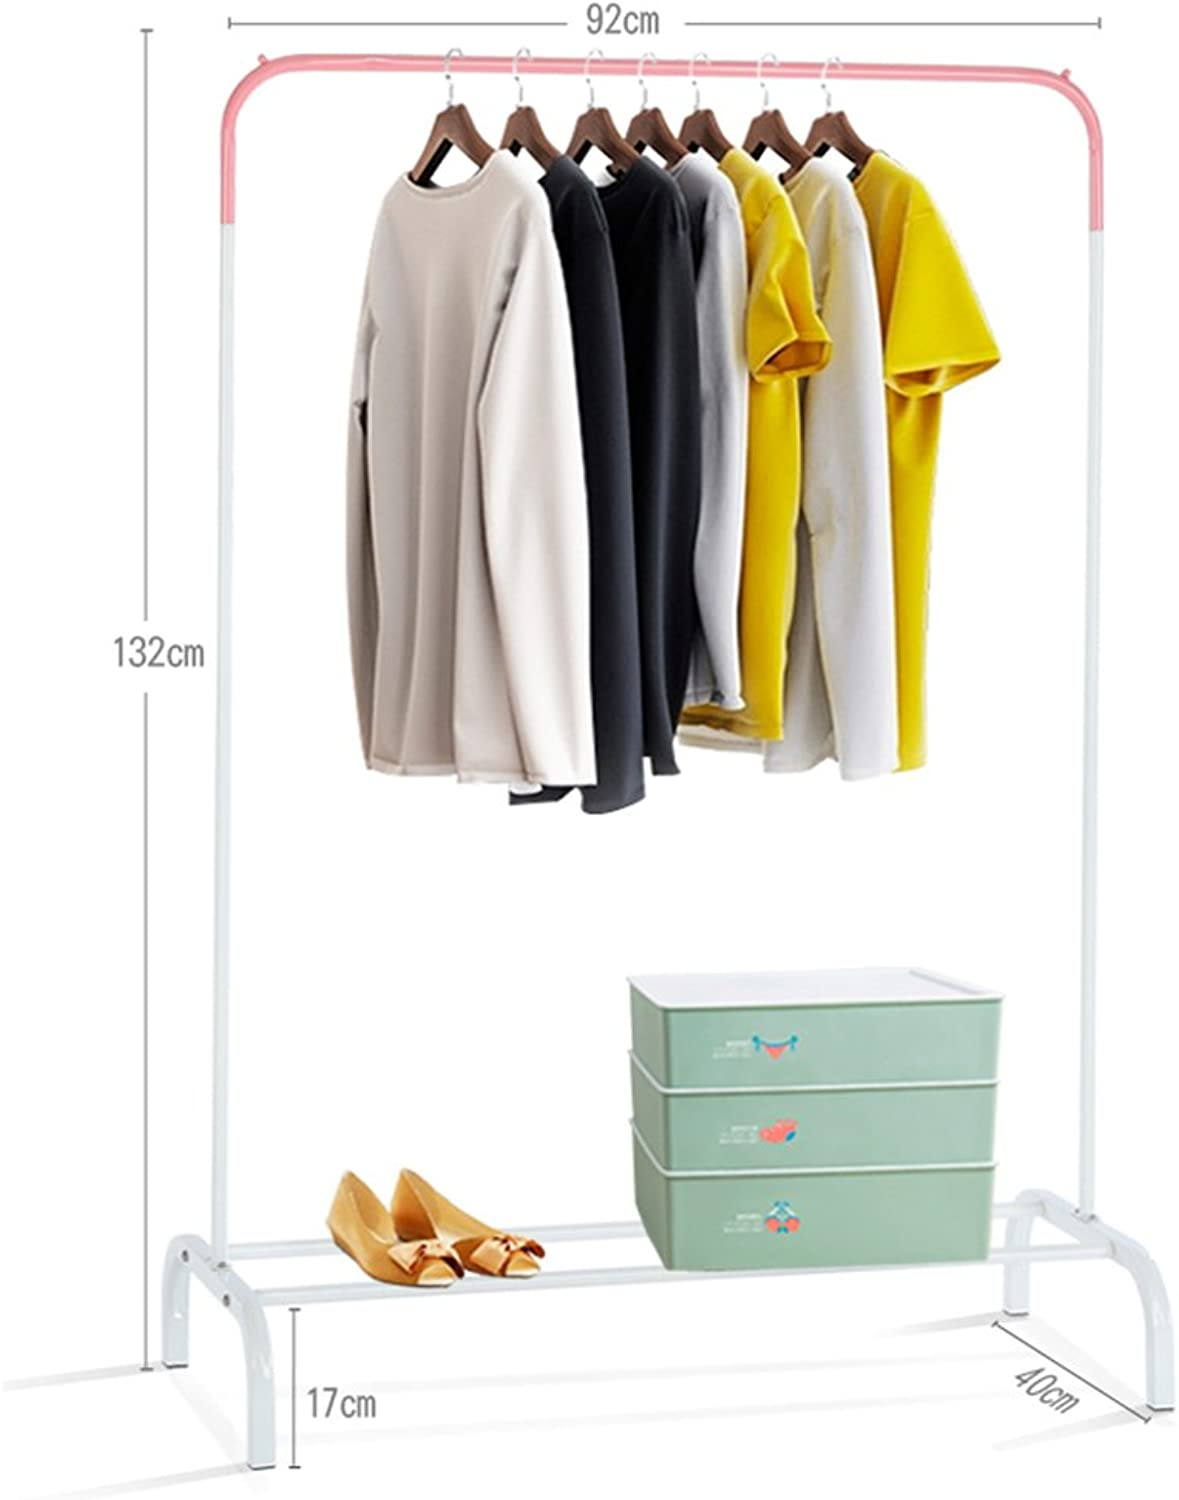 ZHIRONG Coat Rack Multifunction Floor Type Easy to Move Hangers Clothes Hanger Two Sizes (color   White+Pink, Size   132  92cm)